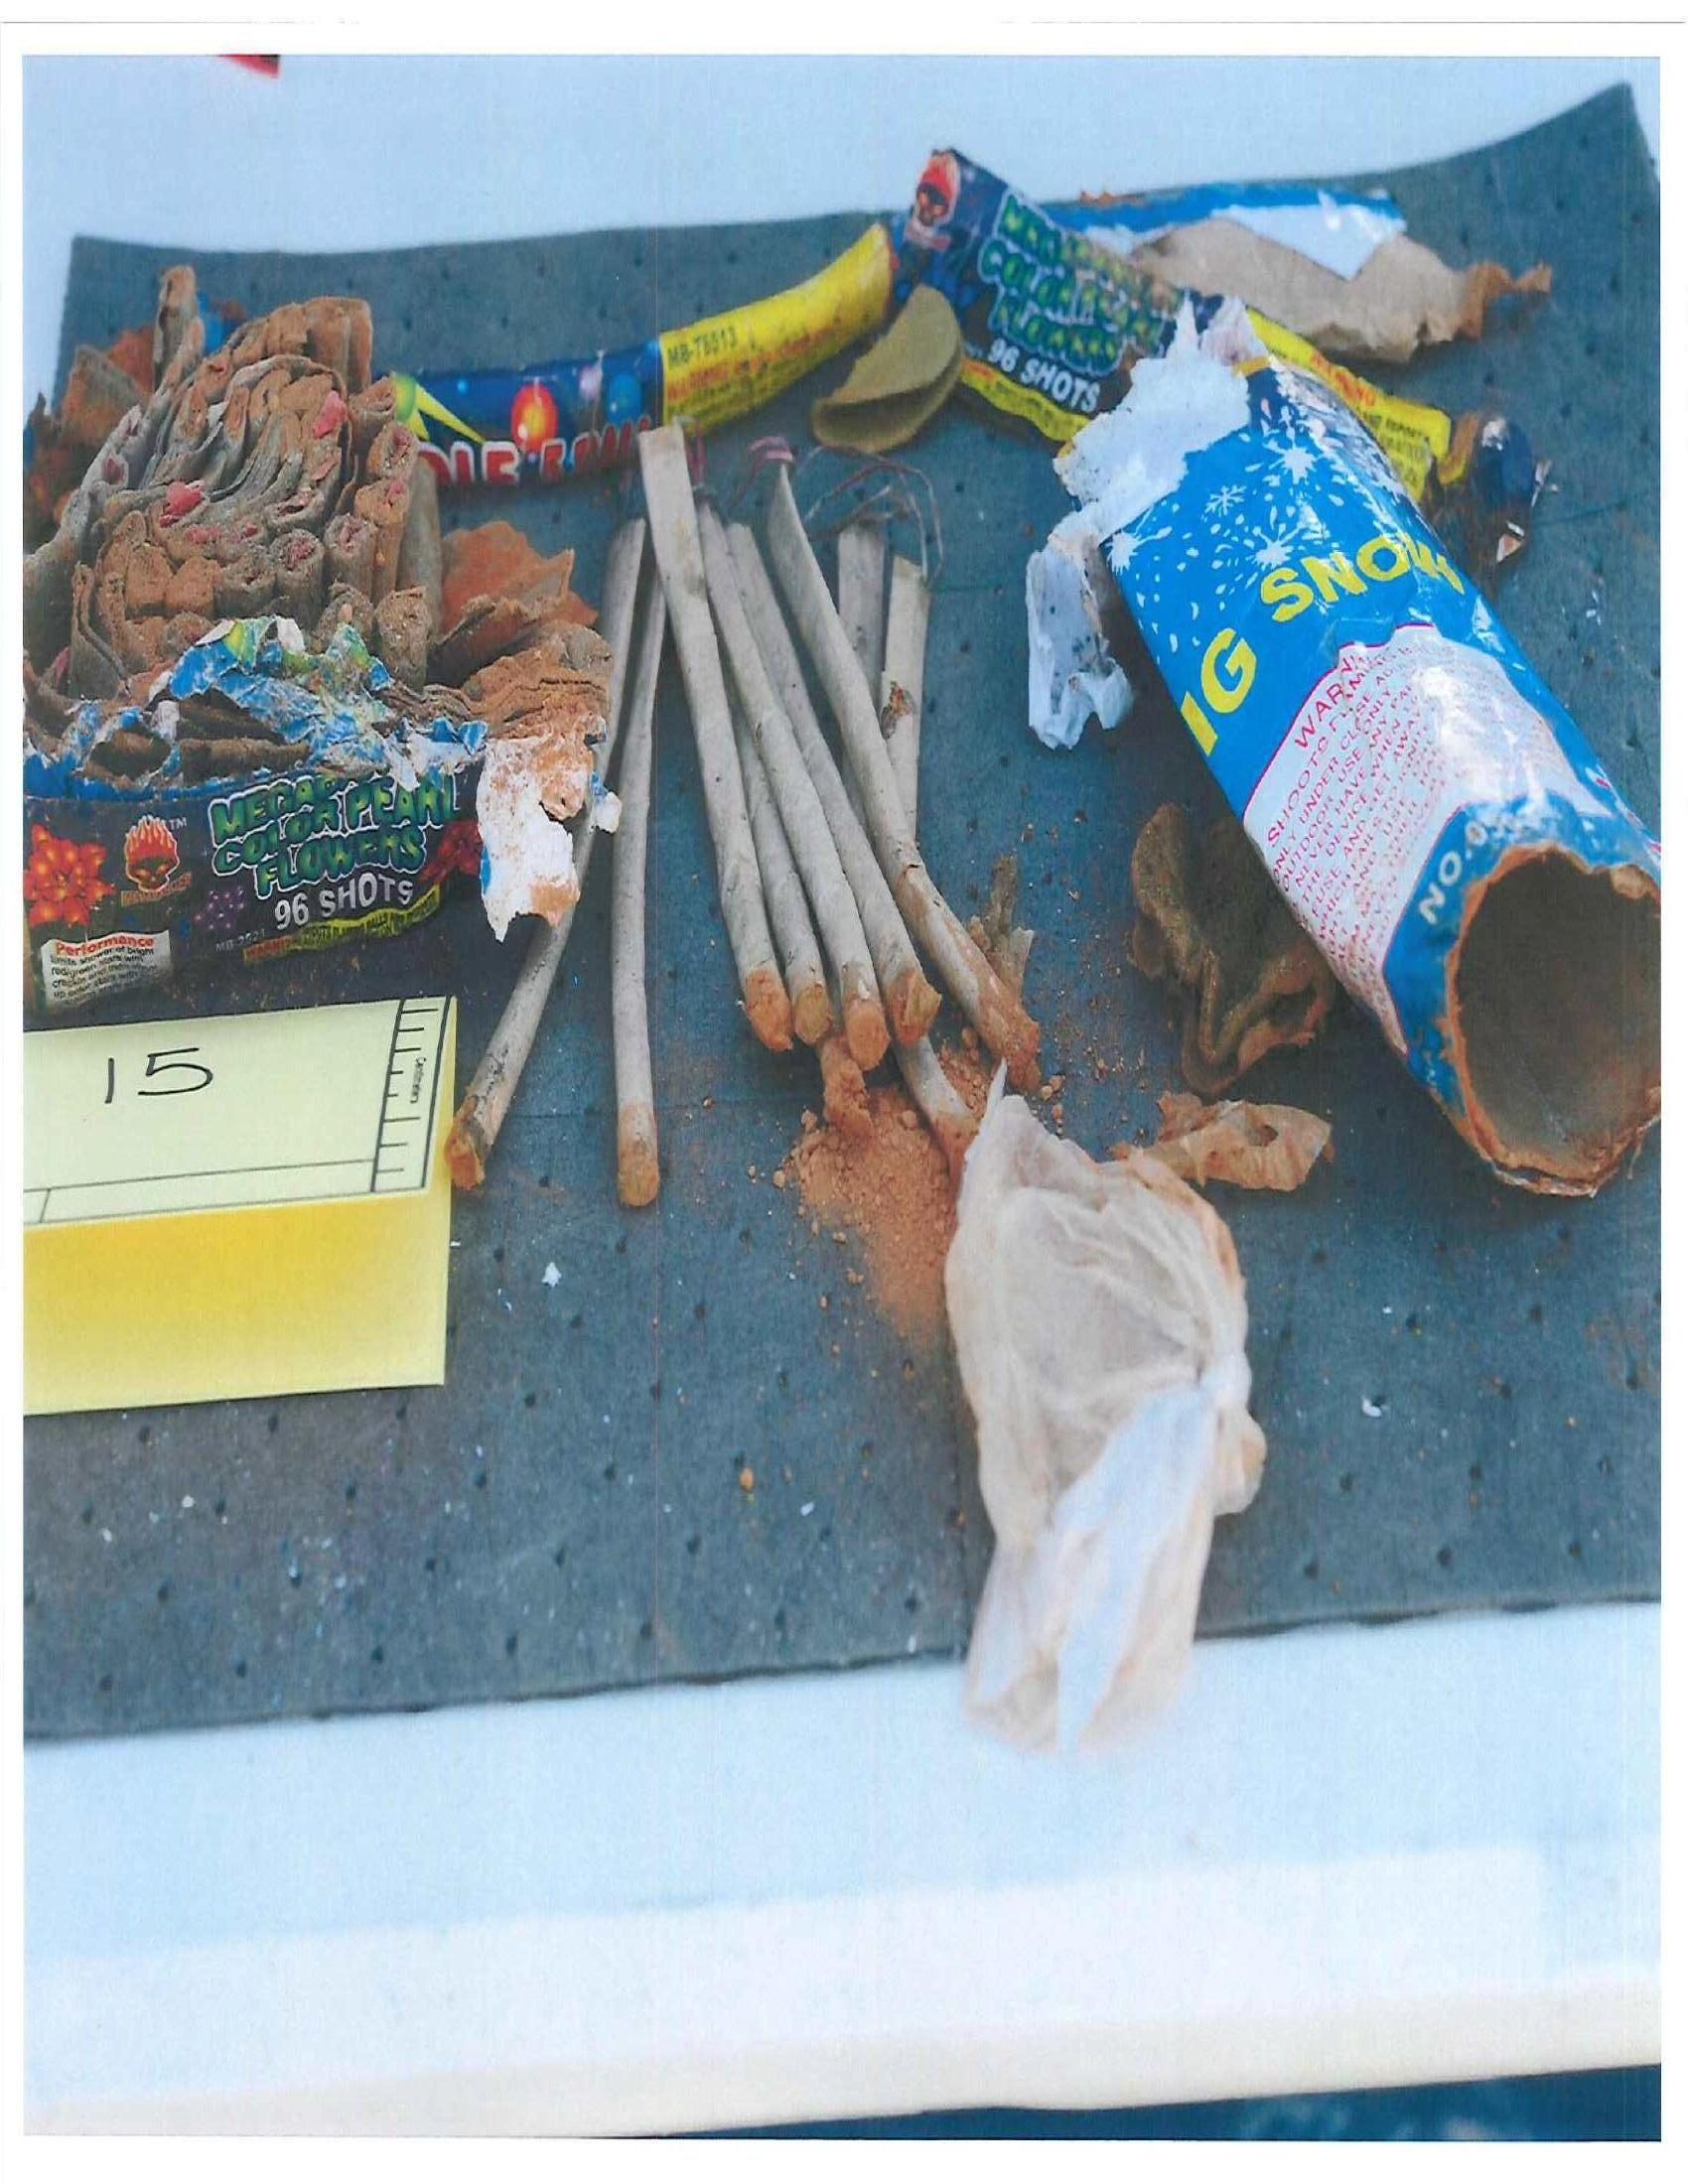 Fireworks Allegedly Disposed by Suspects